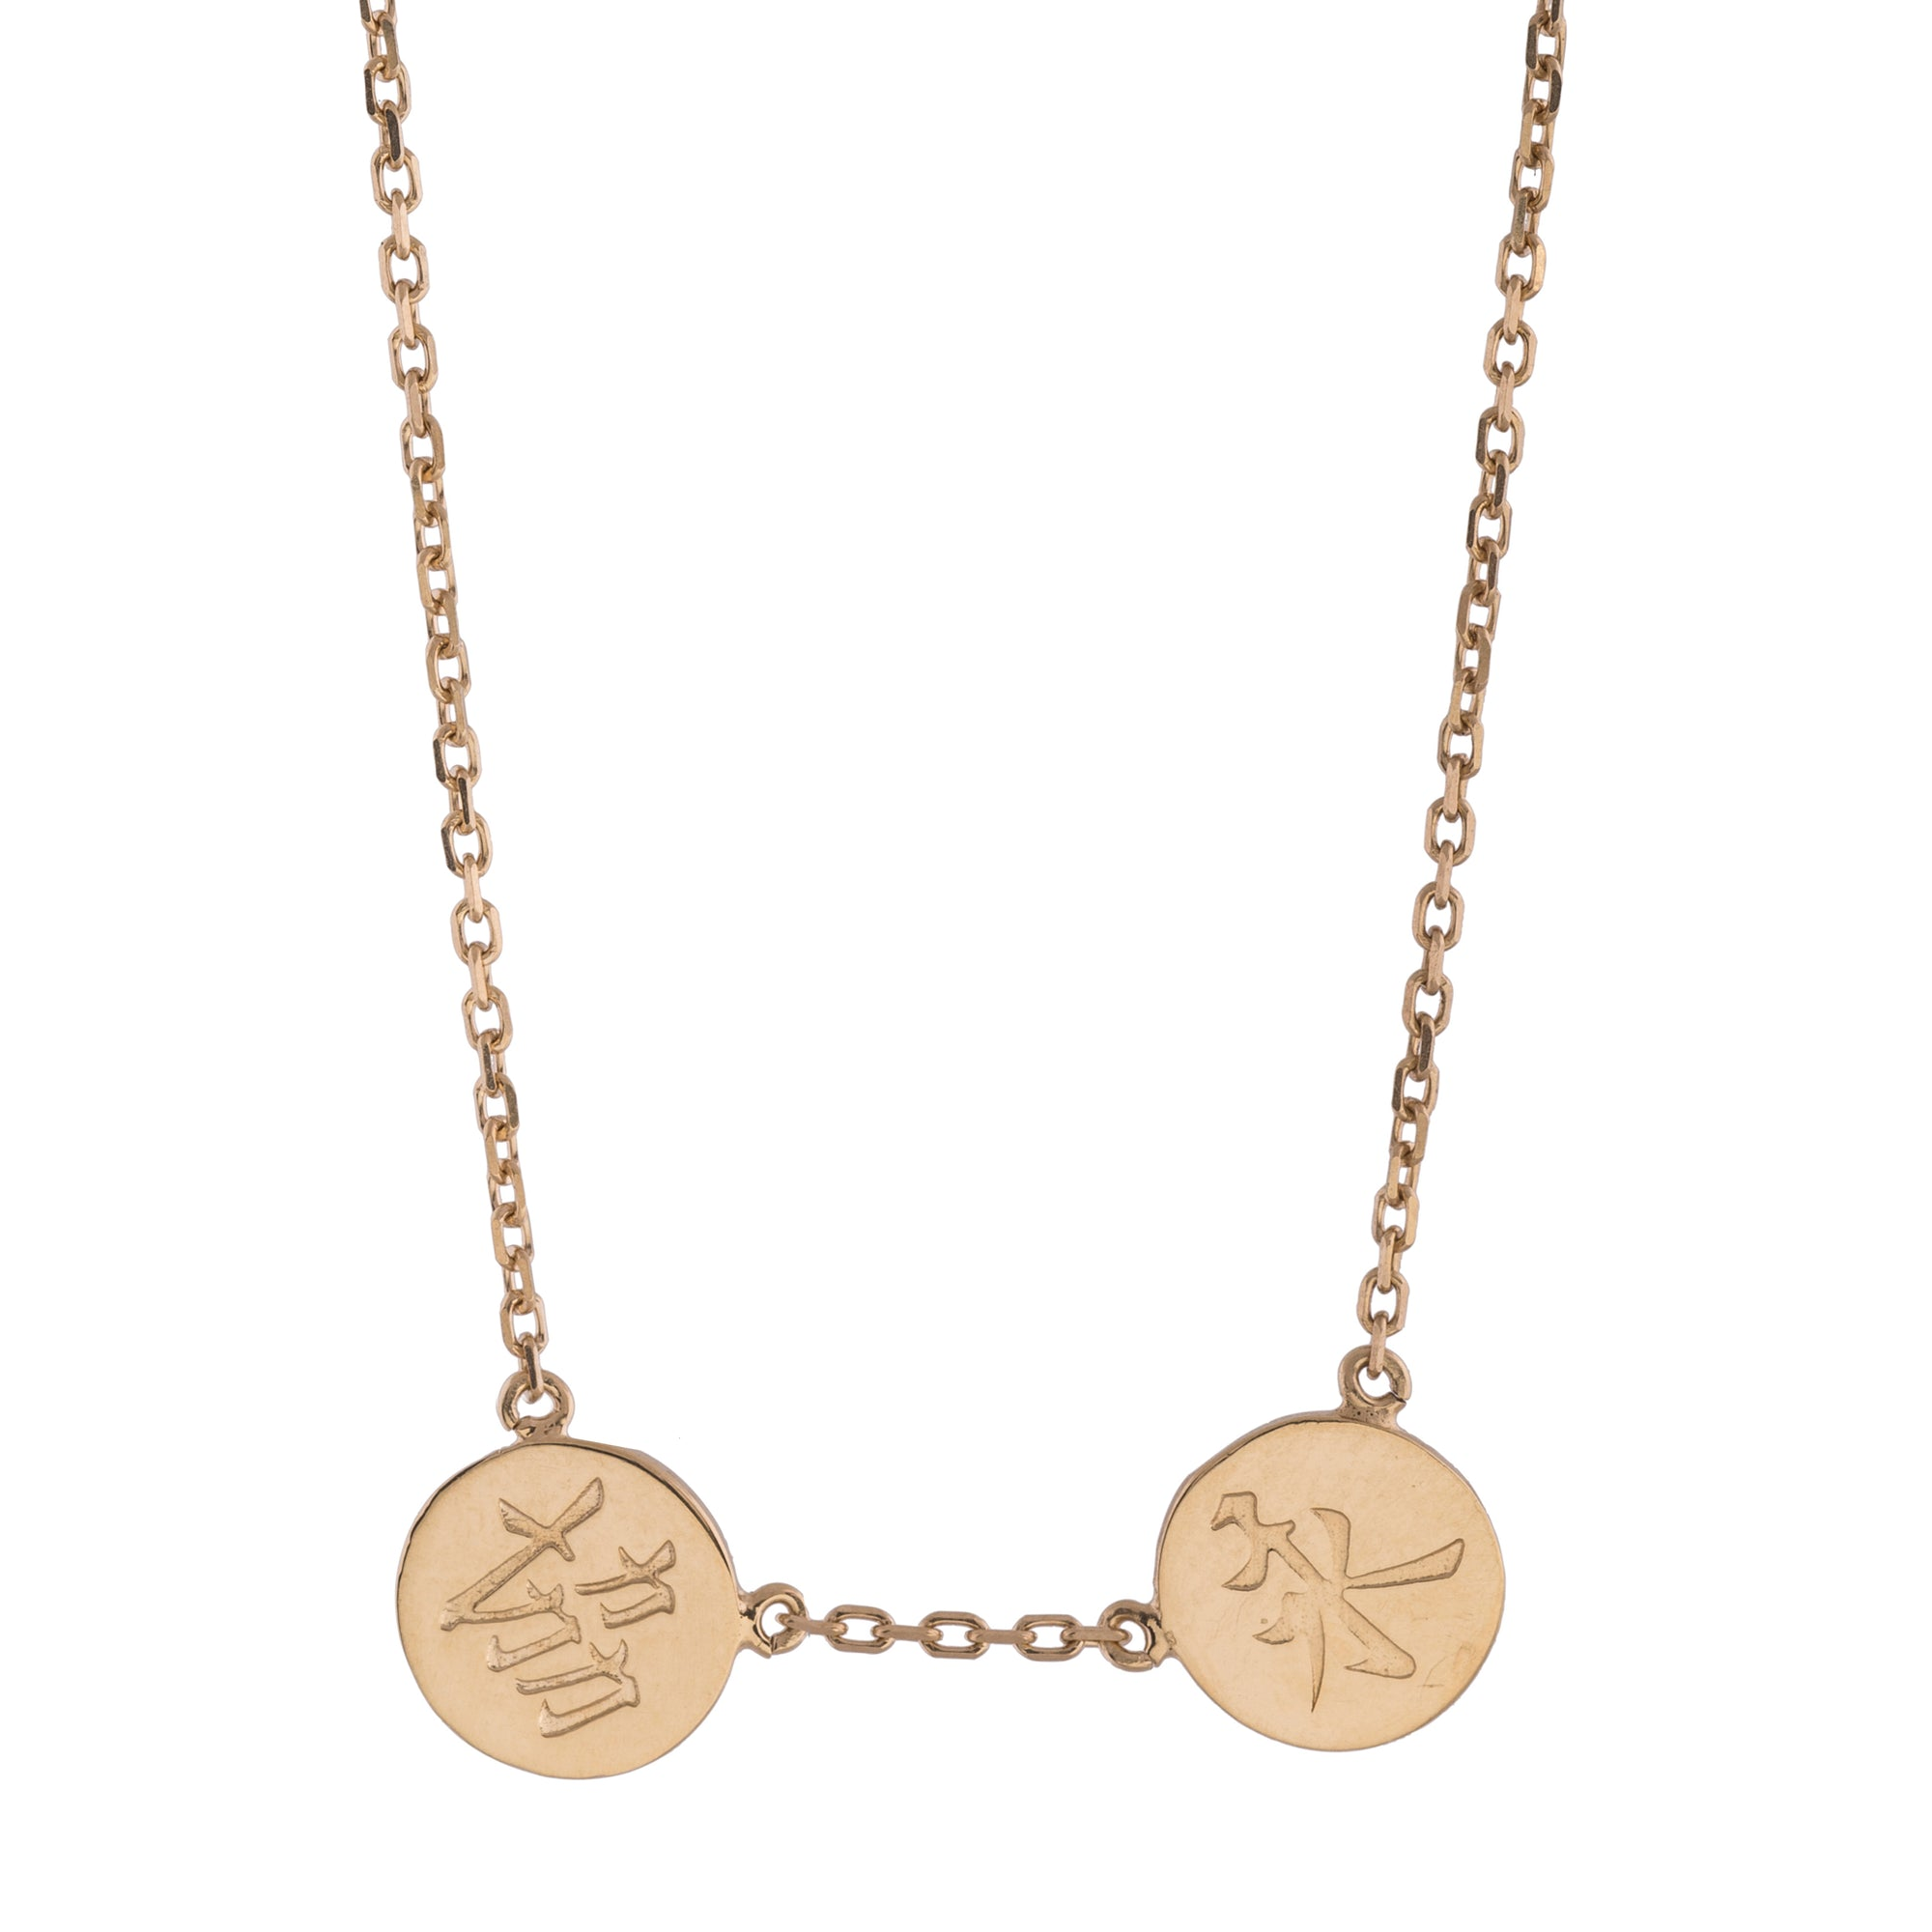 UNITED ETERNITY - GOLD NECKLACE (Symbolising Forever Love)